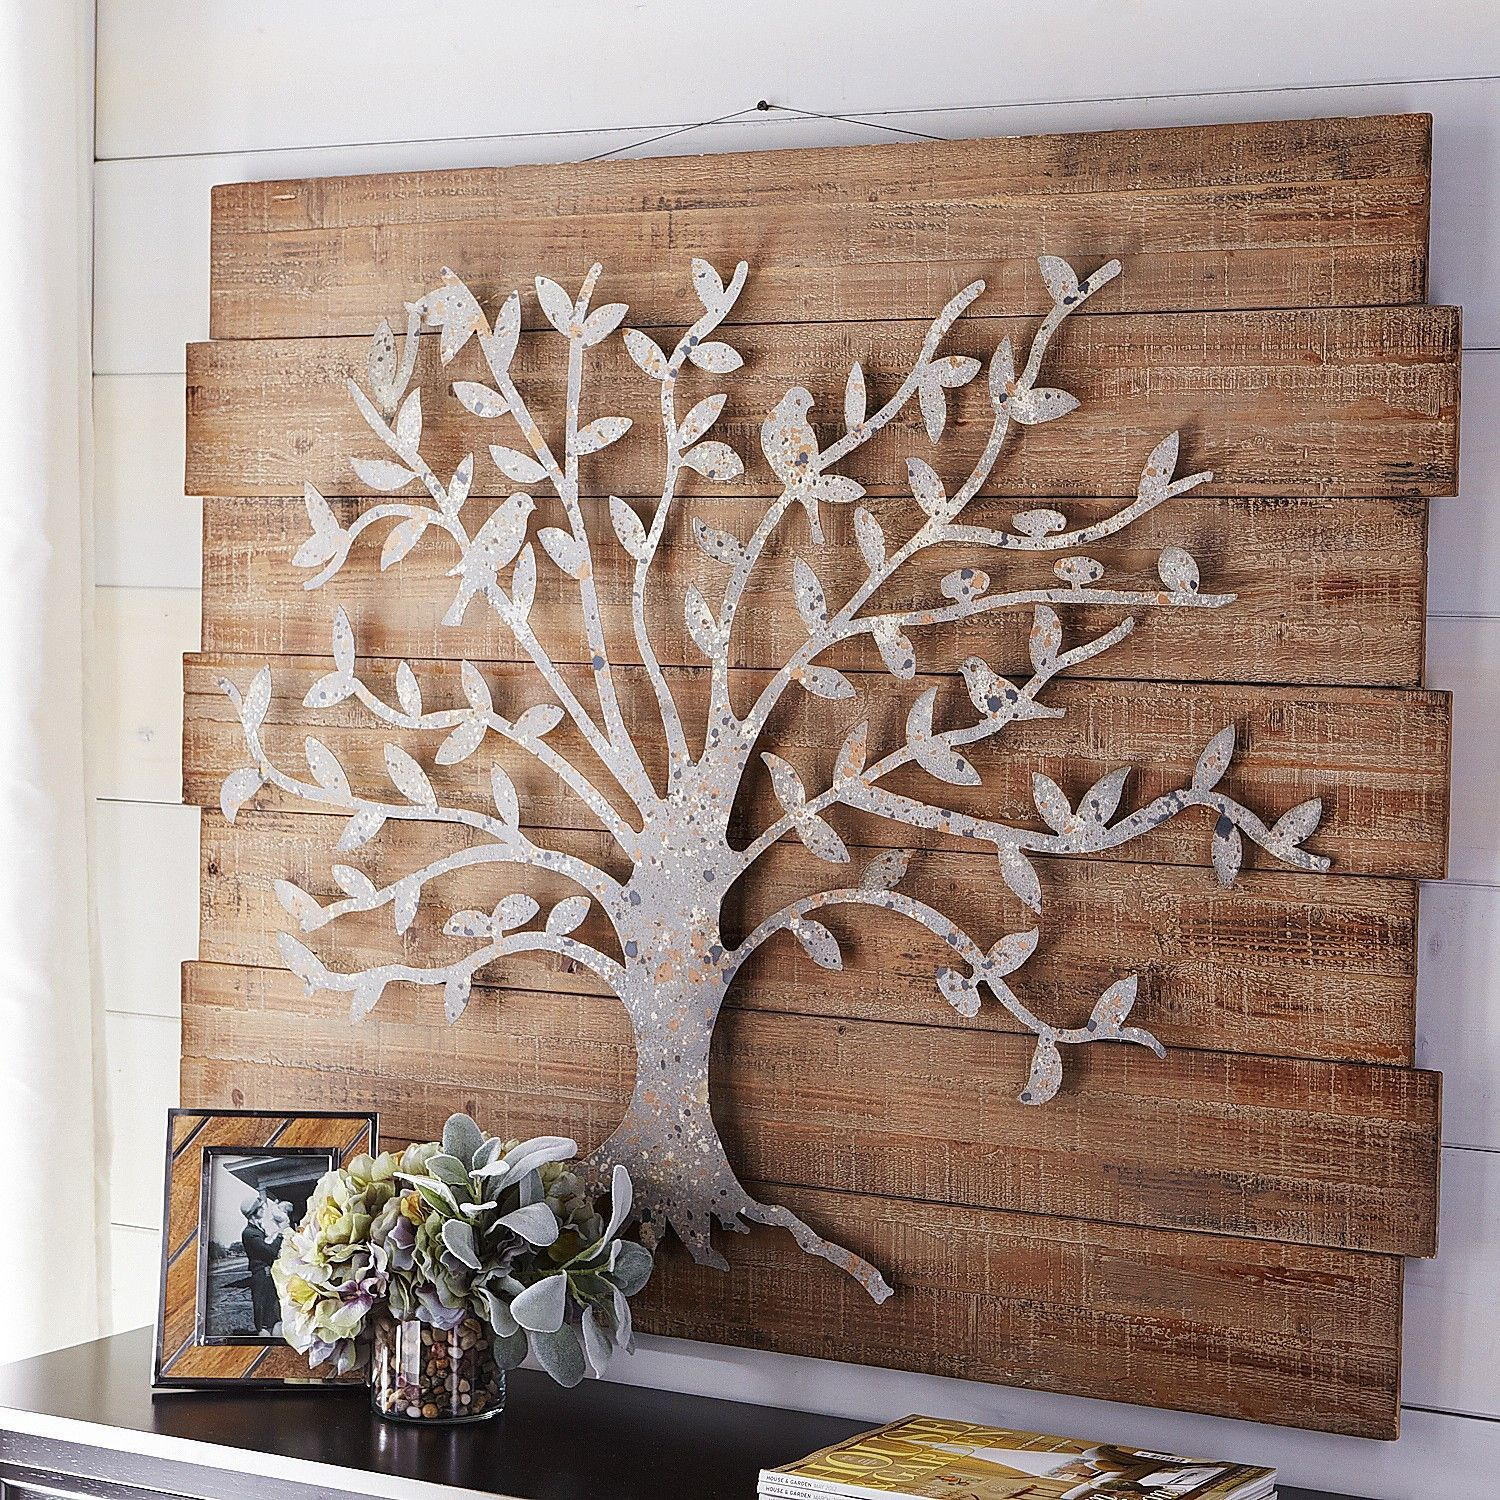 Timeless Tree Wall Decor | Pier 1 Imports … | Metal Work In throughout Ornamental Wood and Metal Scroll Wall Decor (Image 25 of 30)